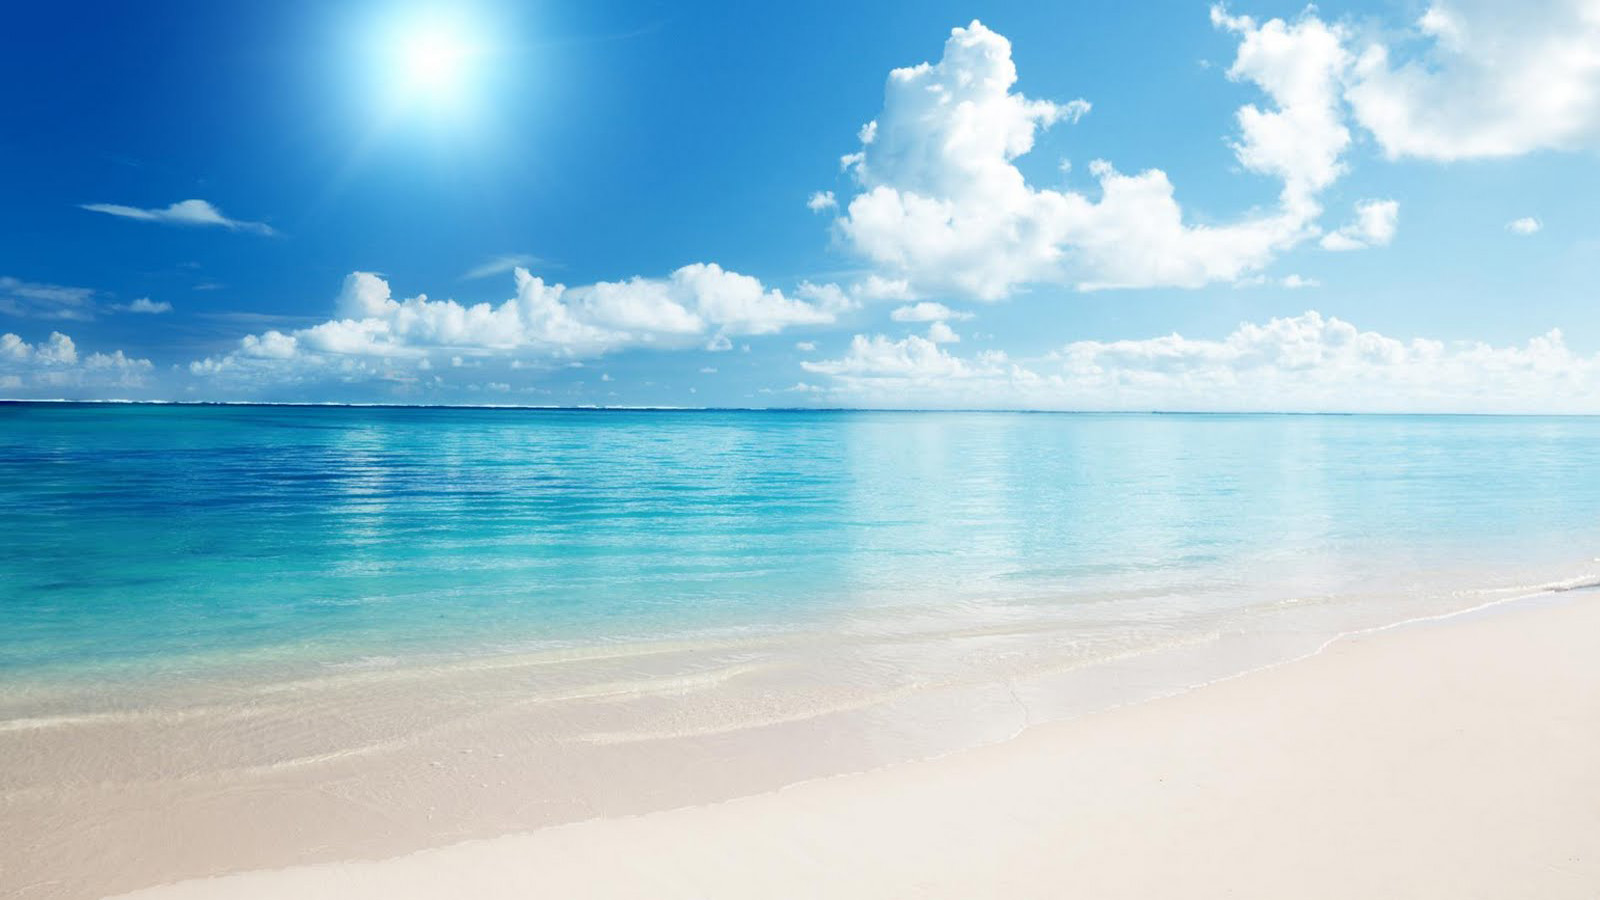 Sunny Beach Wallpaper photos of How to Choose Beautiful 1600x900